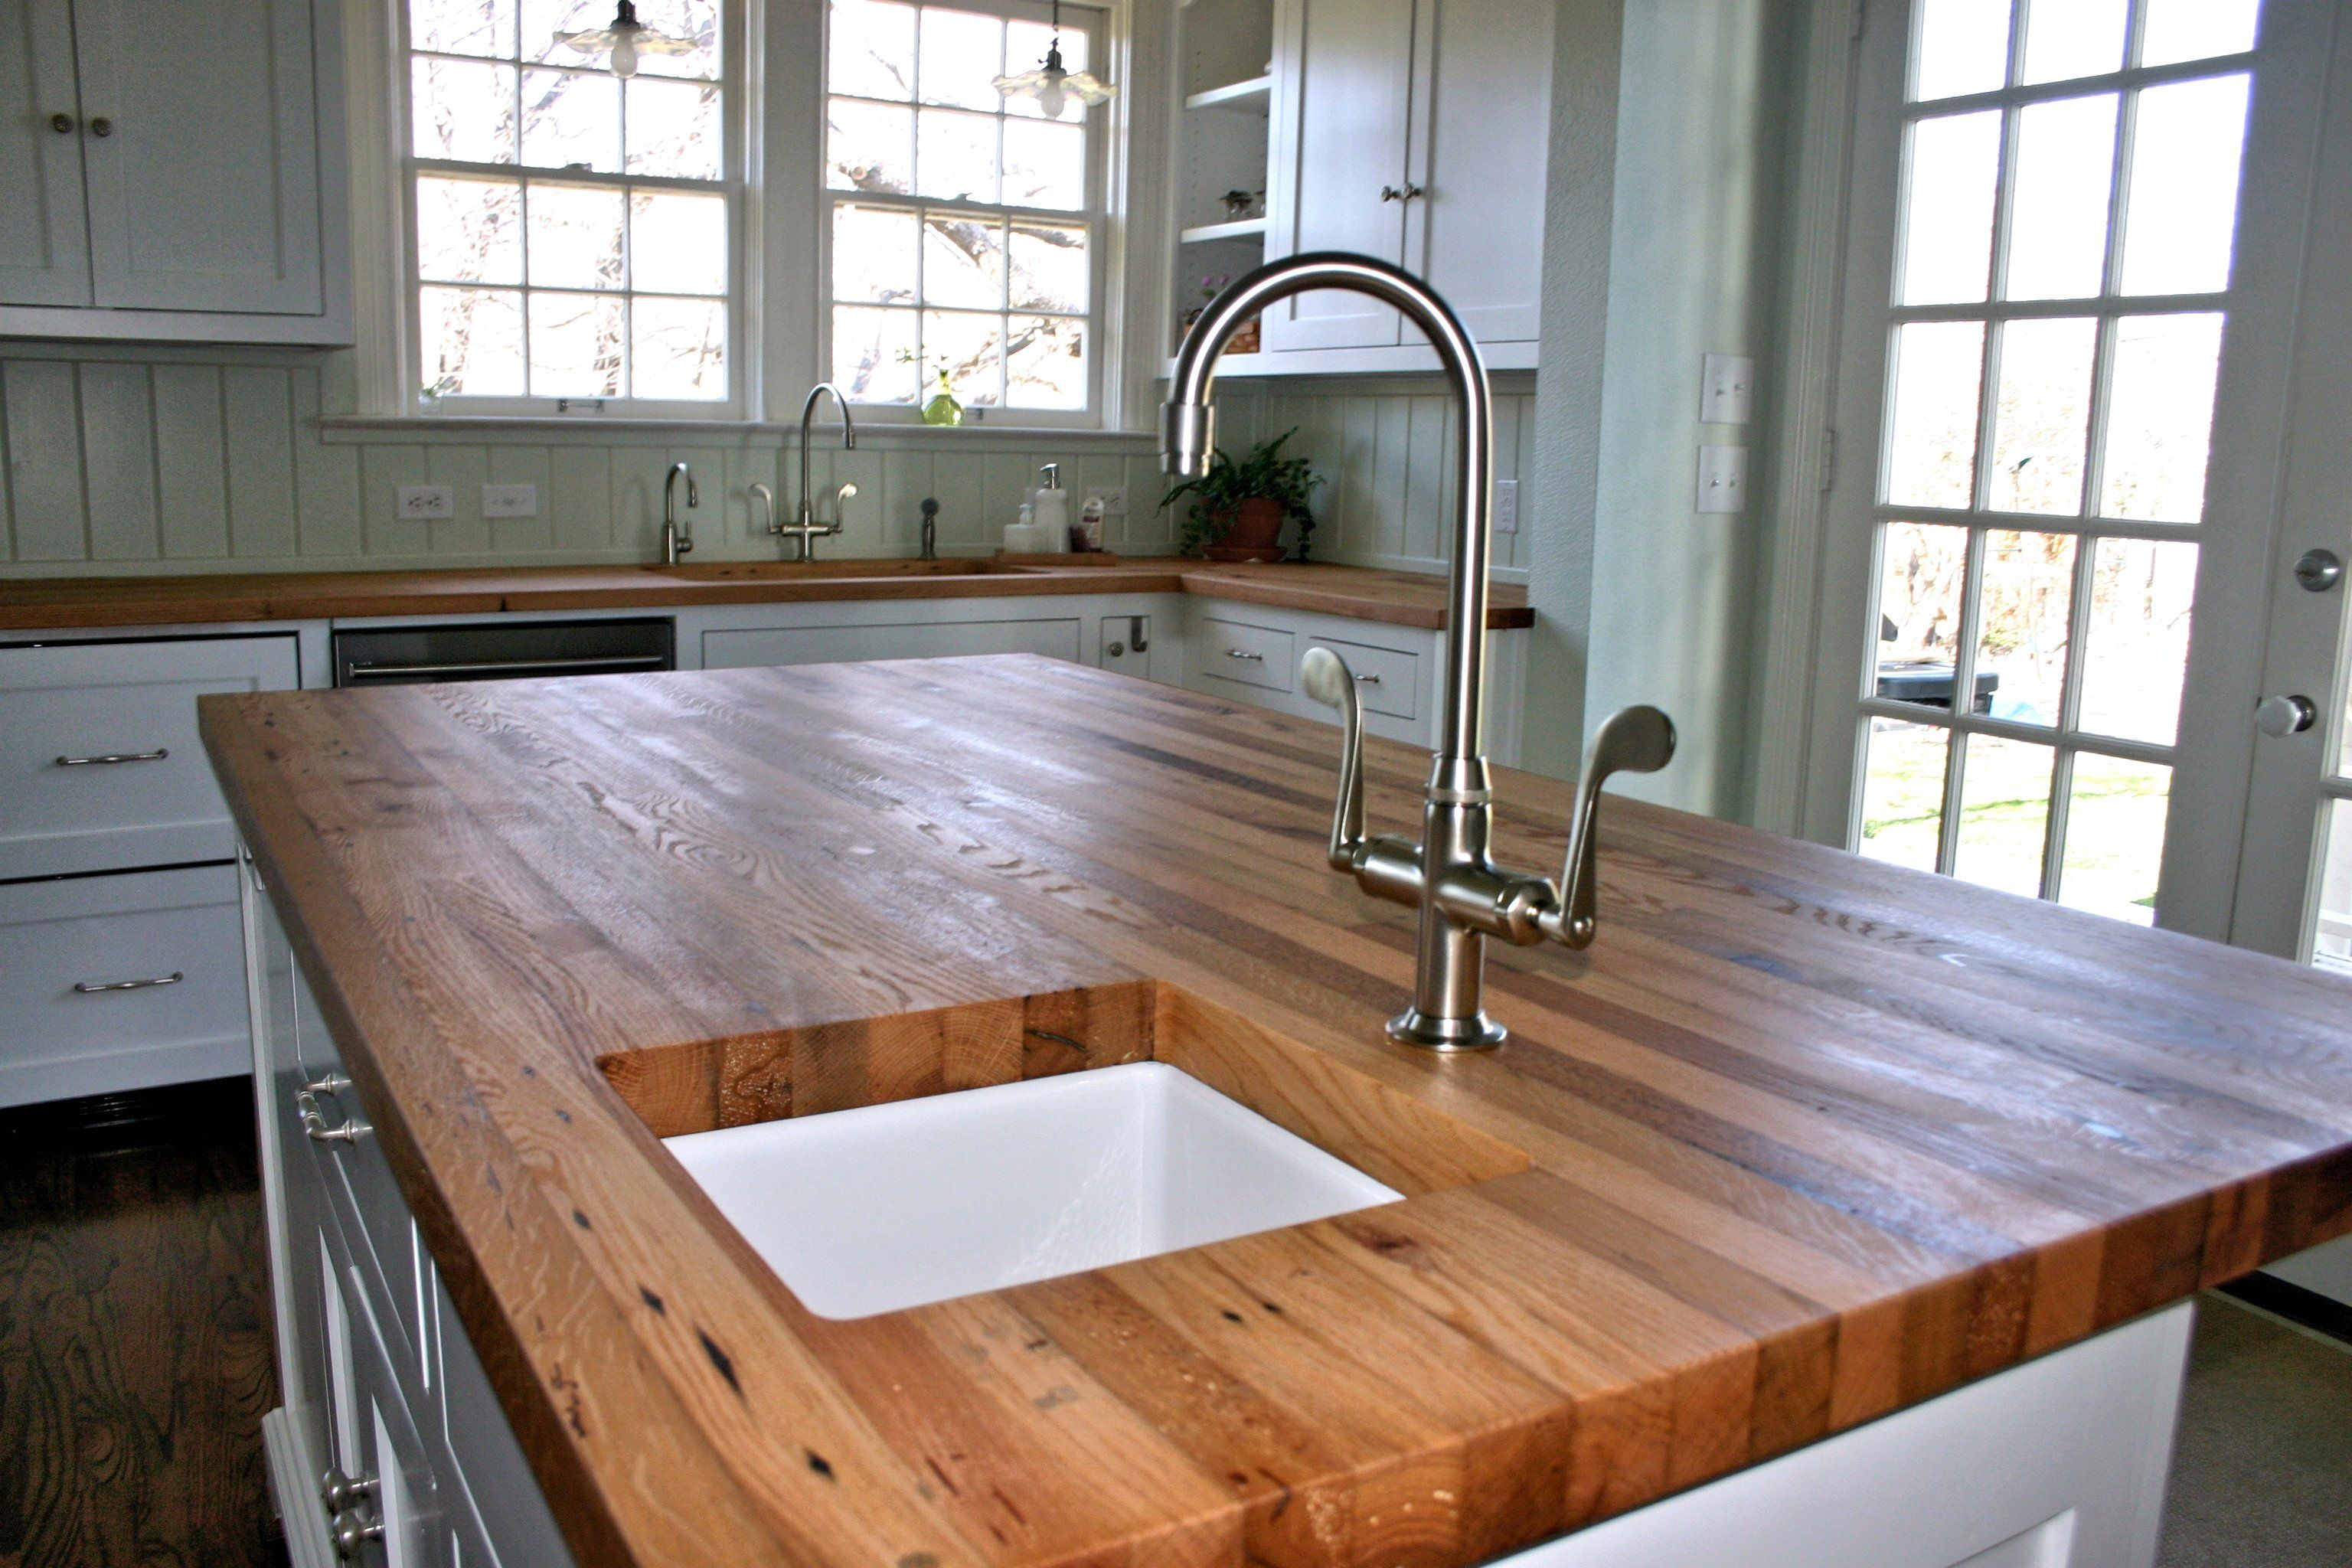 Devos Custom Woodworking Reclaimed White Oak Wood Countertop Photo Gallery Another Outdoor Kitchen